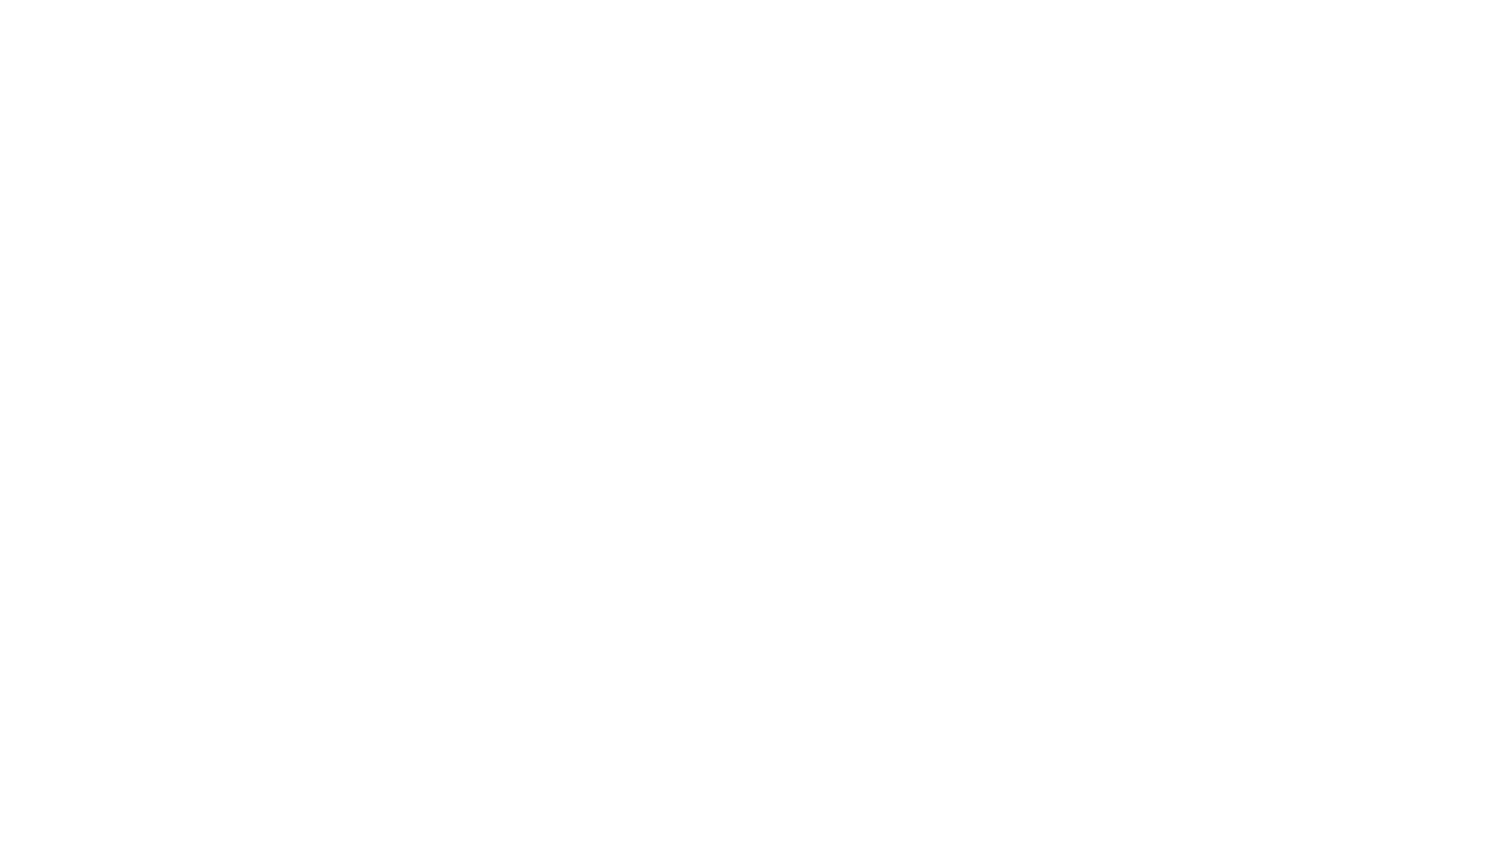 iEmpowered